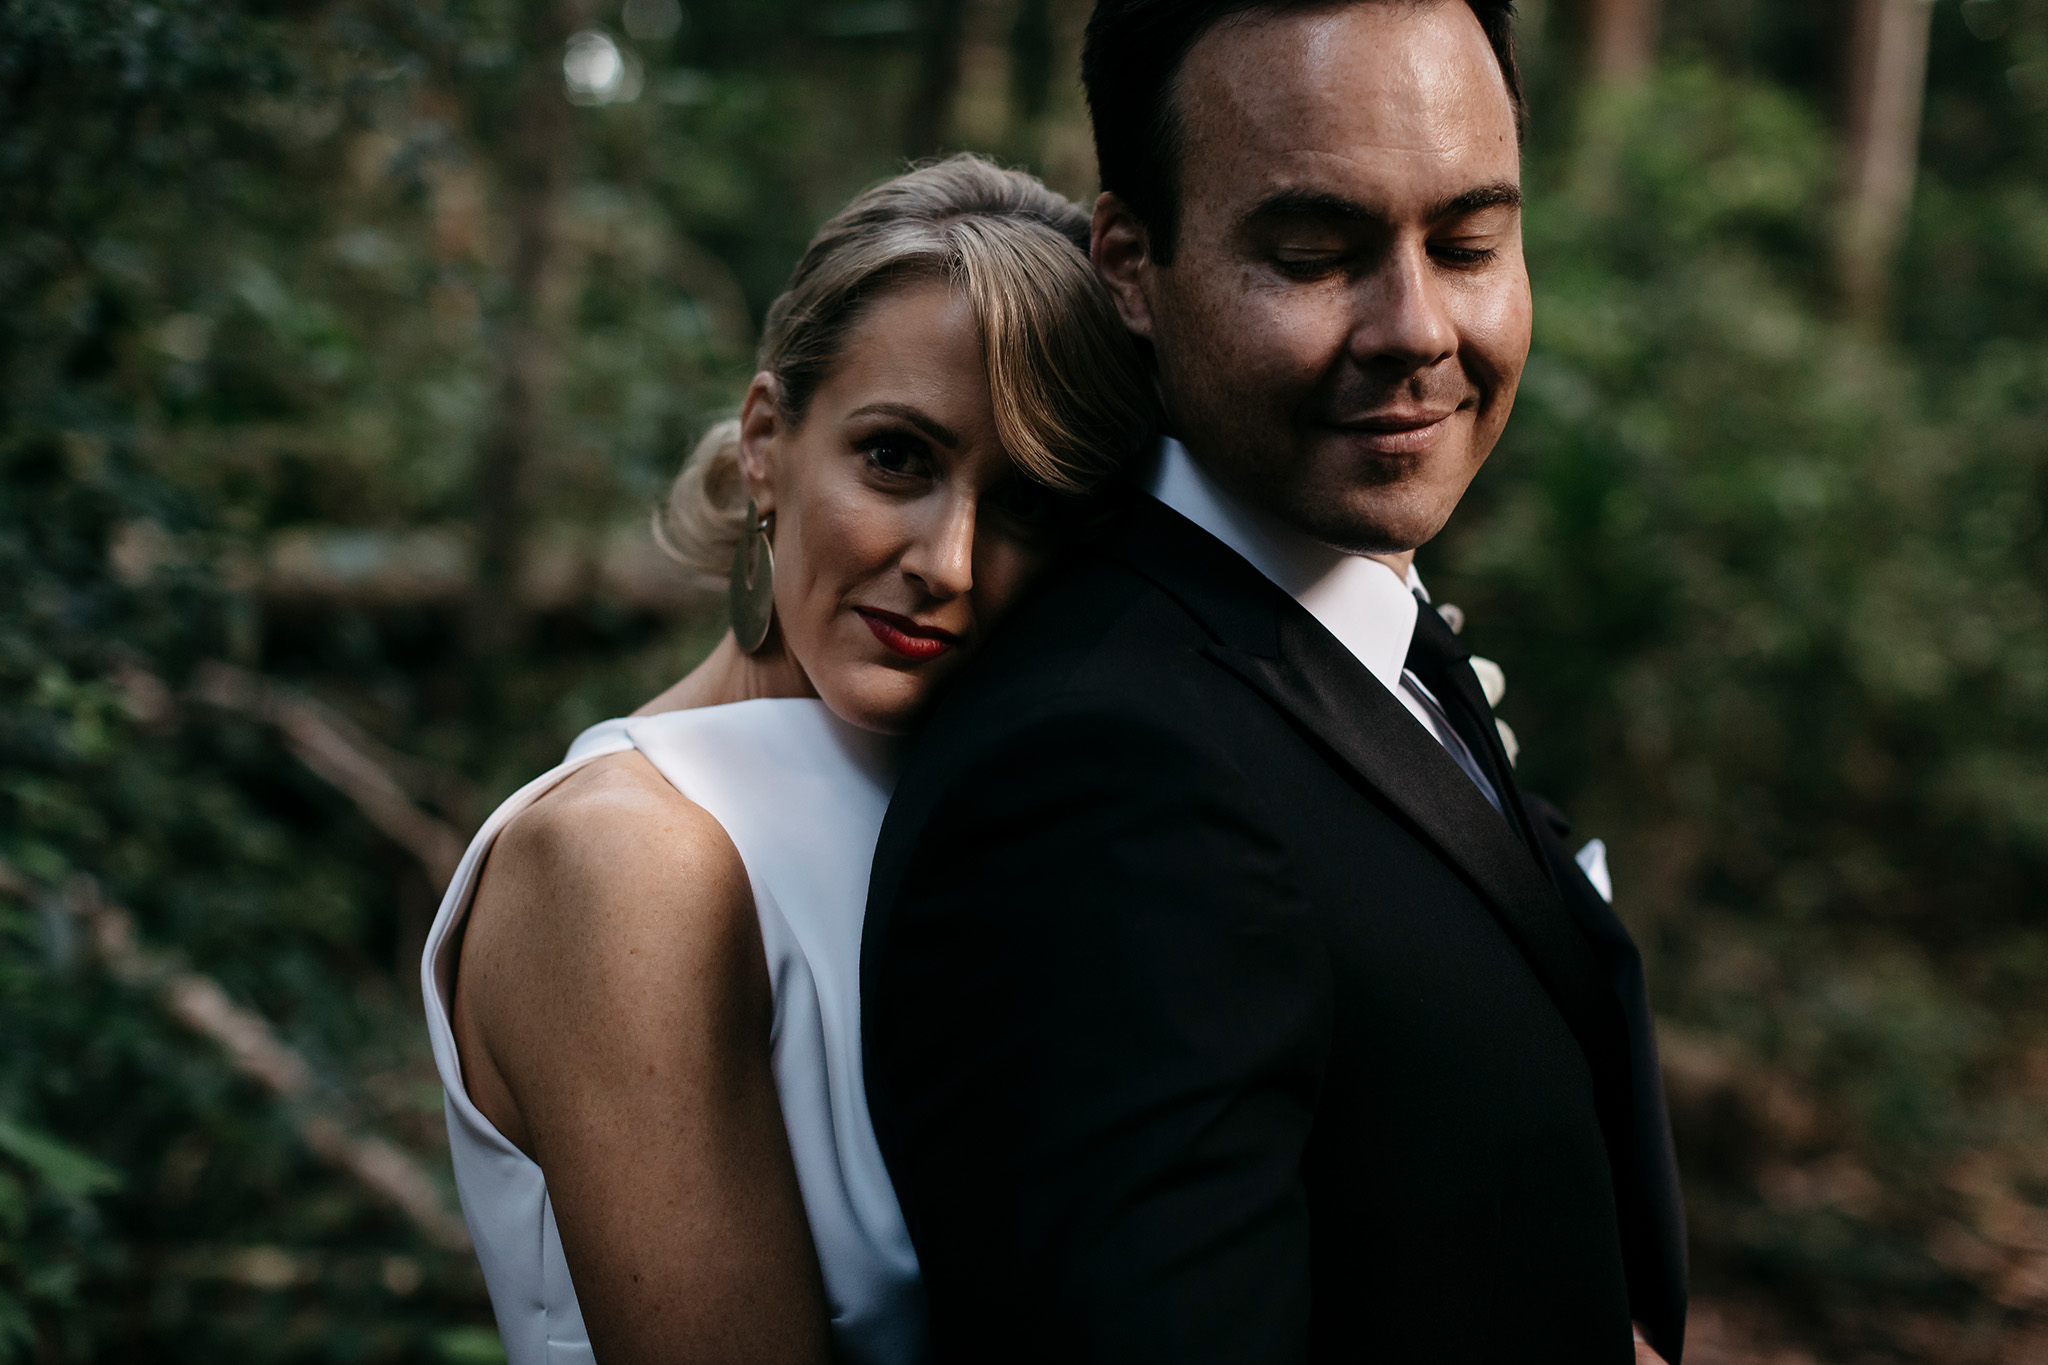 Categories: Weddings-Real Wedding: Amy and Ken - Photography by Katie Harmsworth